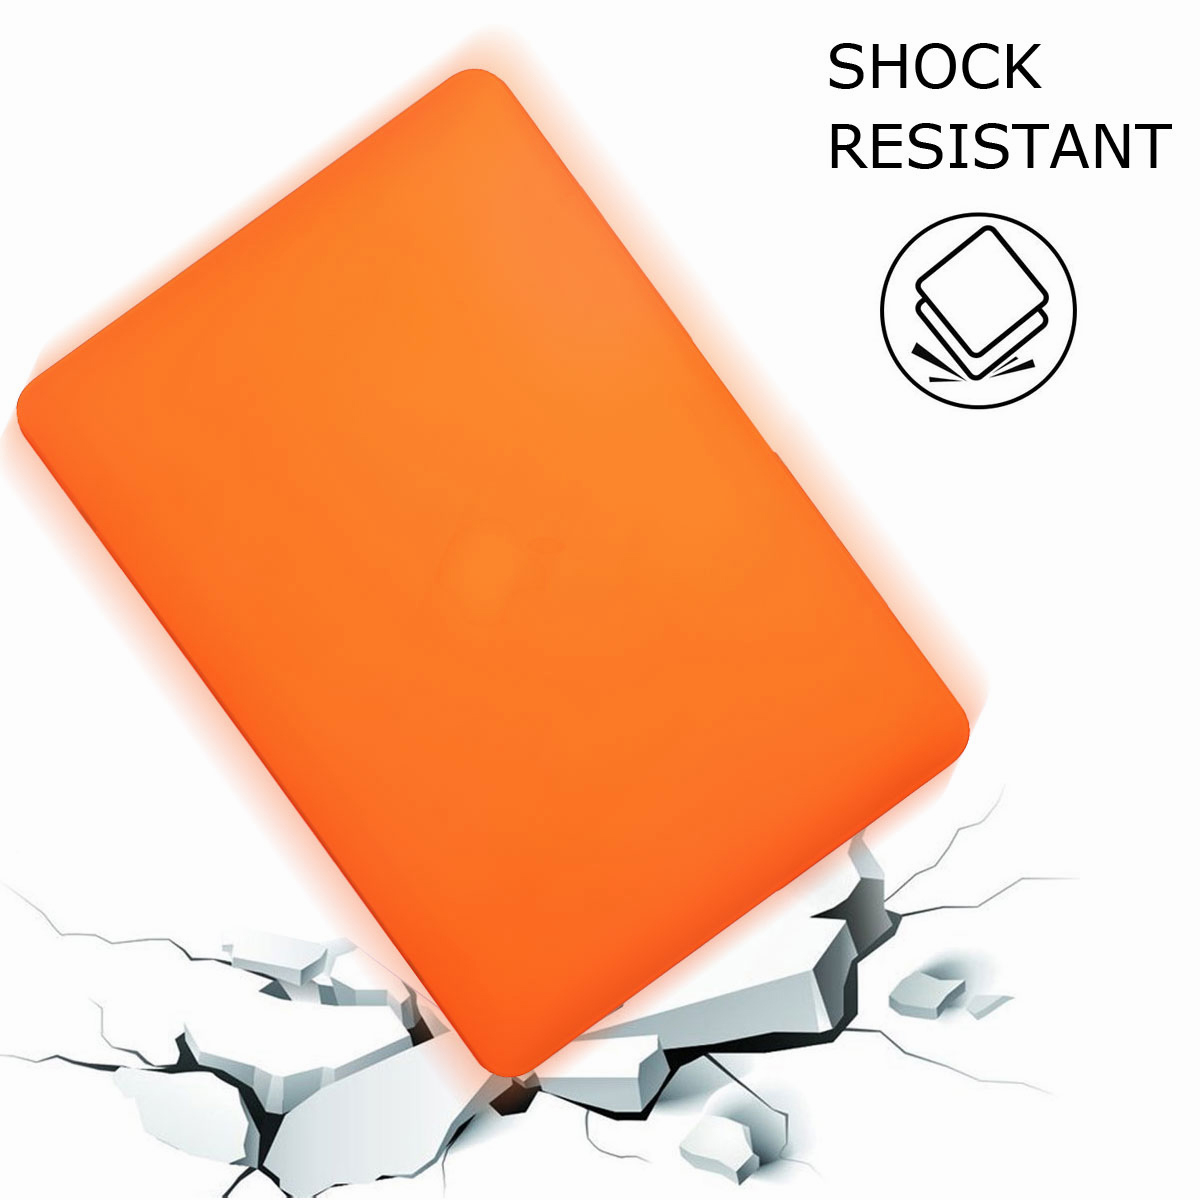 Matte-Rubberized-Hard-Case-Cover-Shell-For-Macbook-Pro-Retina-12-039-039-13-039-039-15-Inch thumbnail 30